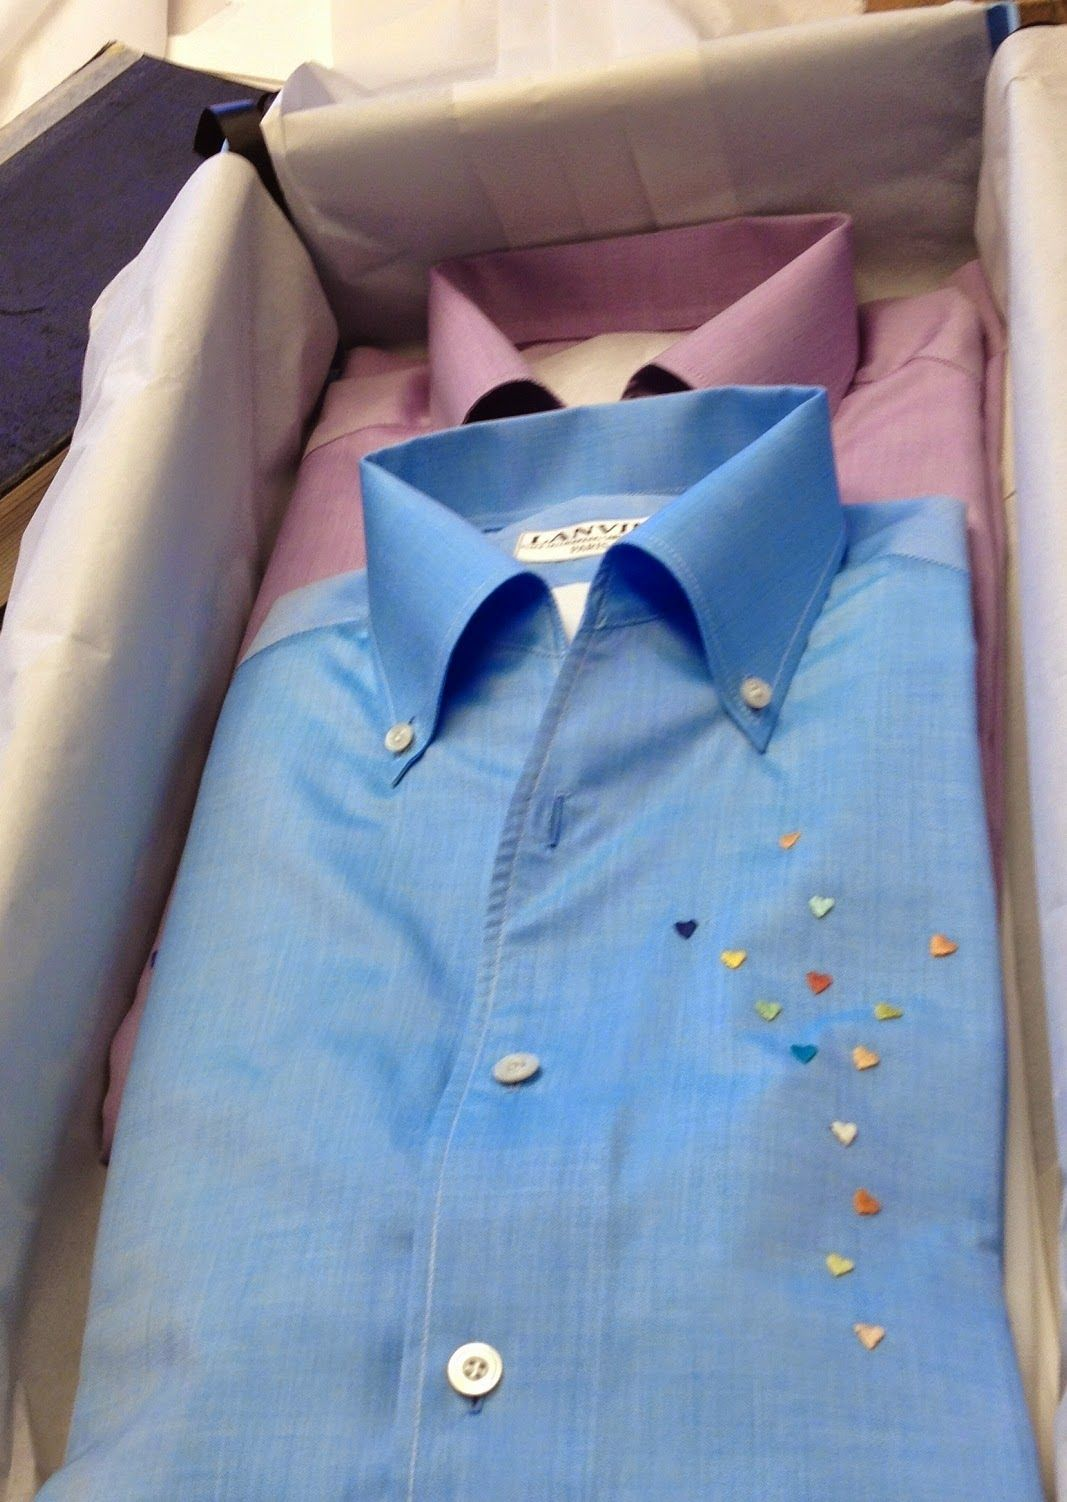 Lanvin Bespoke Shirts With Hand Embroidered Hearts Made To